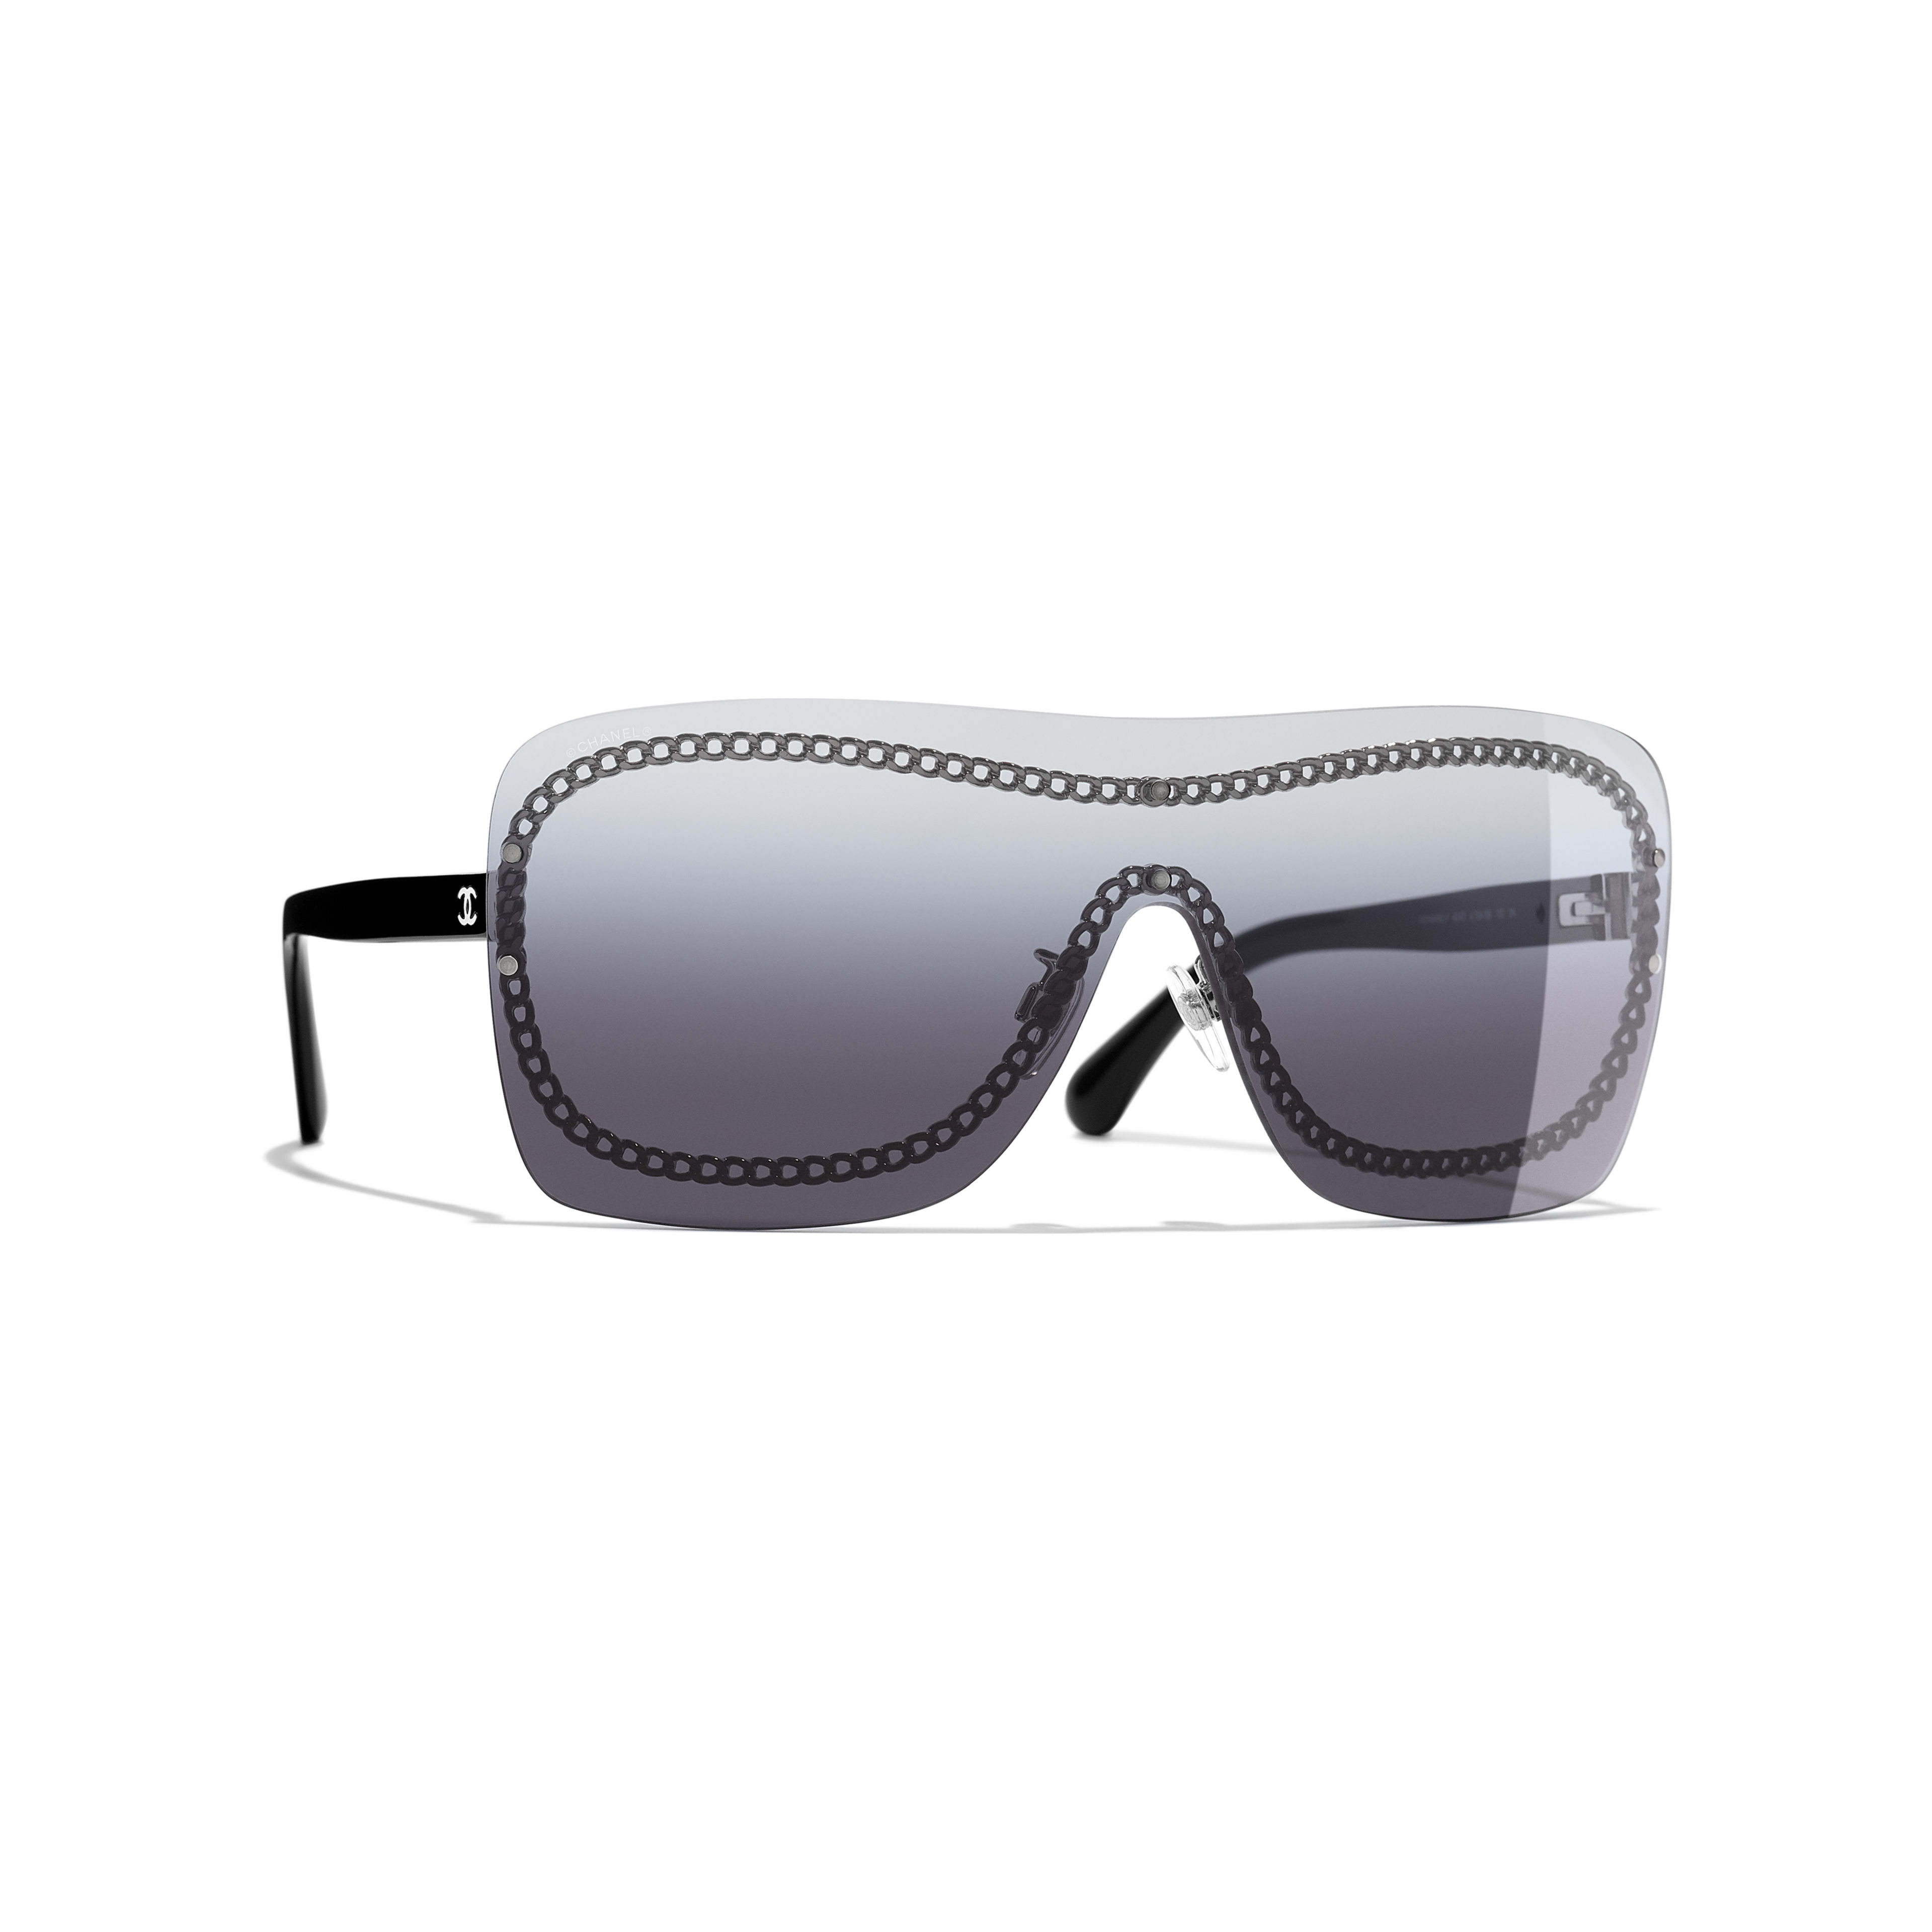 28f3dbecae Shield Sunglasses Black frame. Gray gradient lenses.